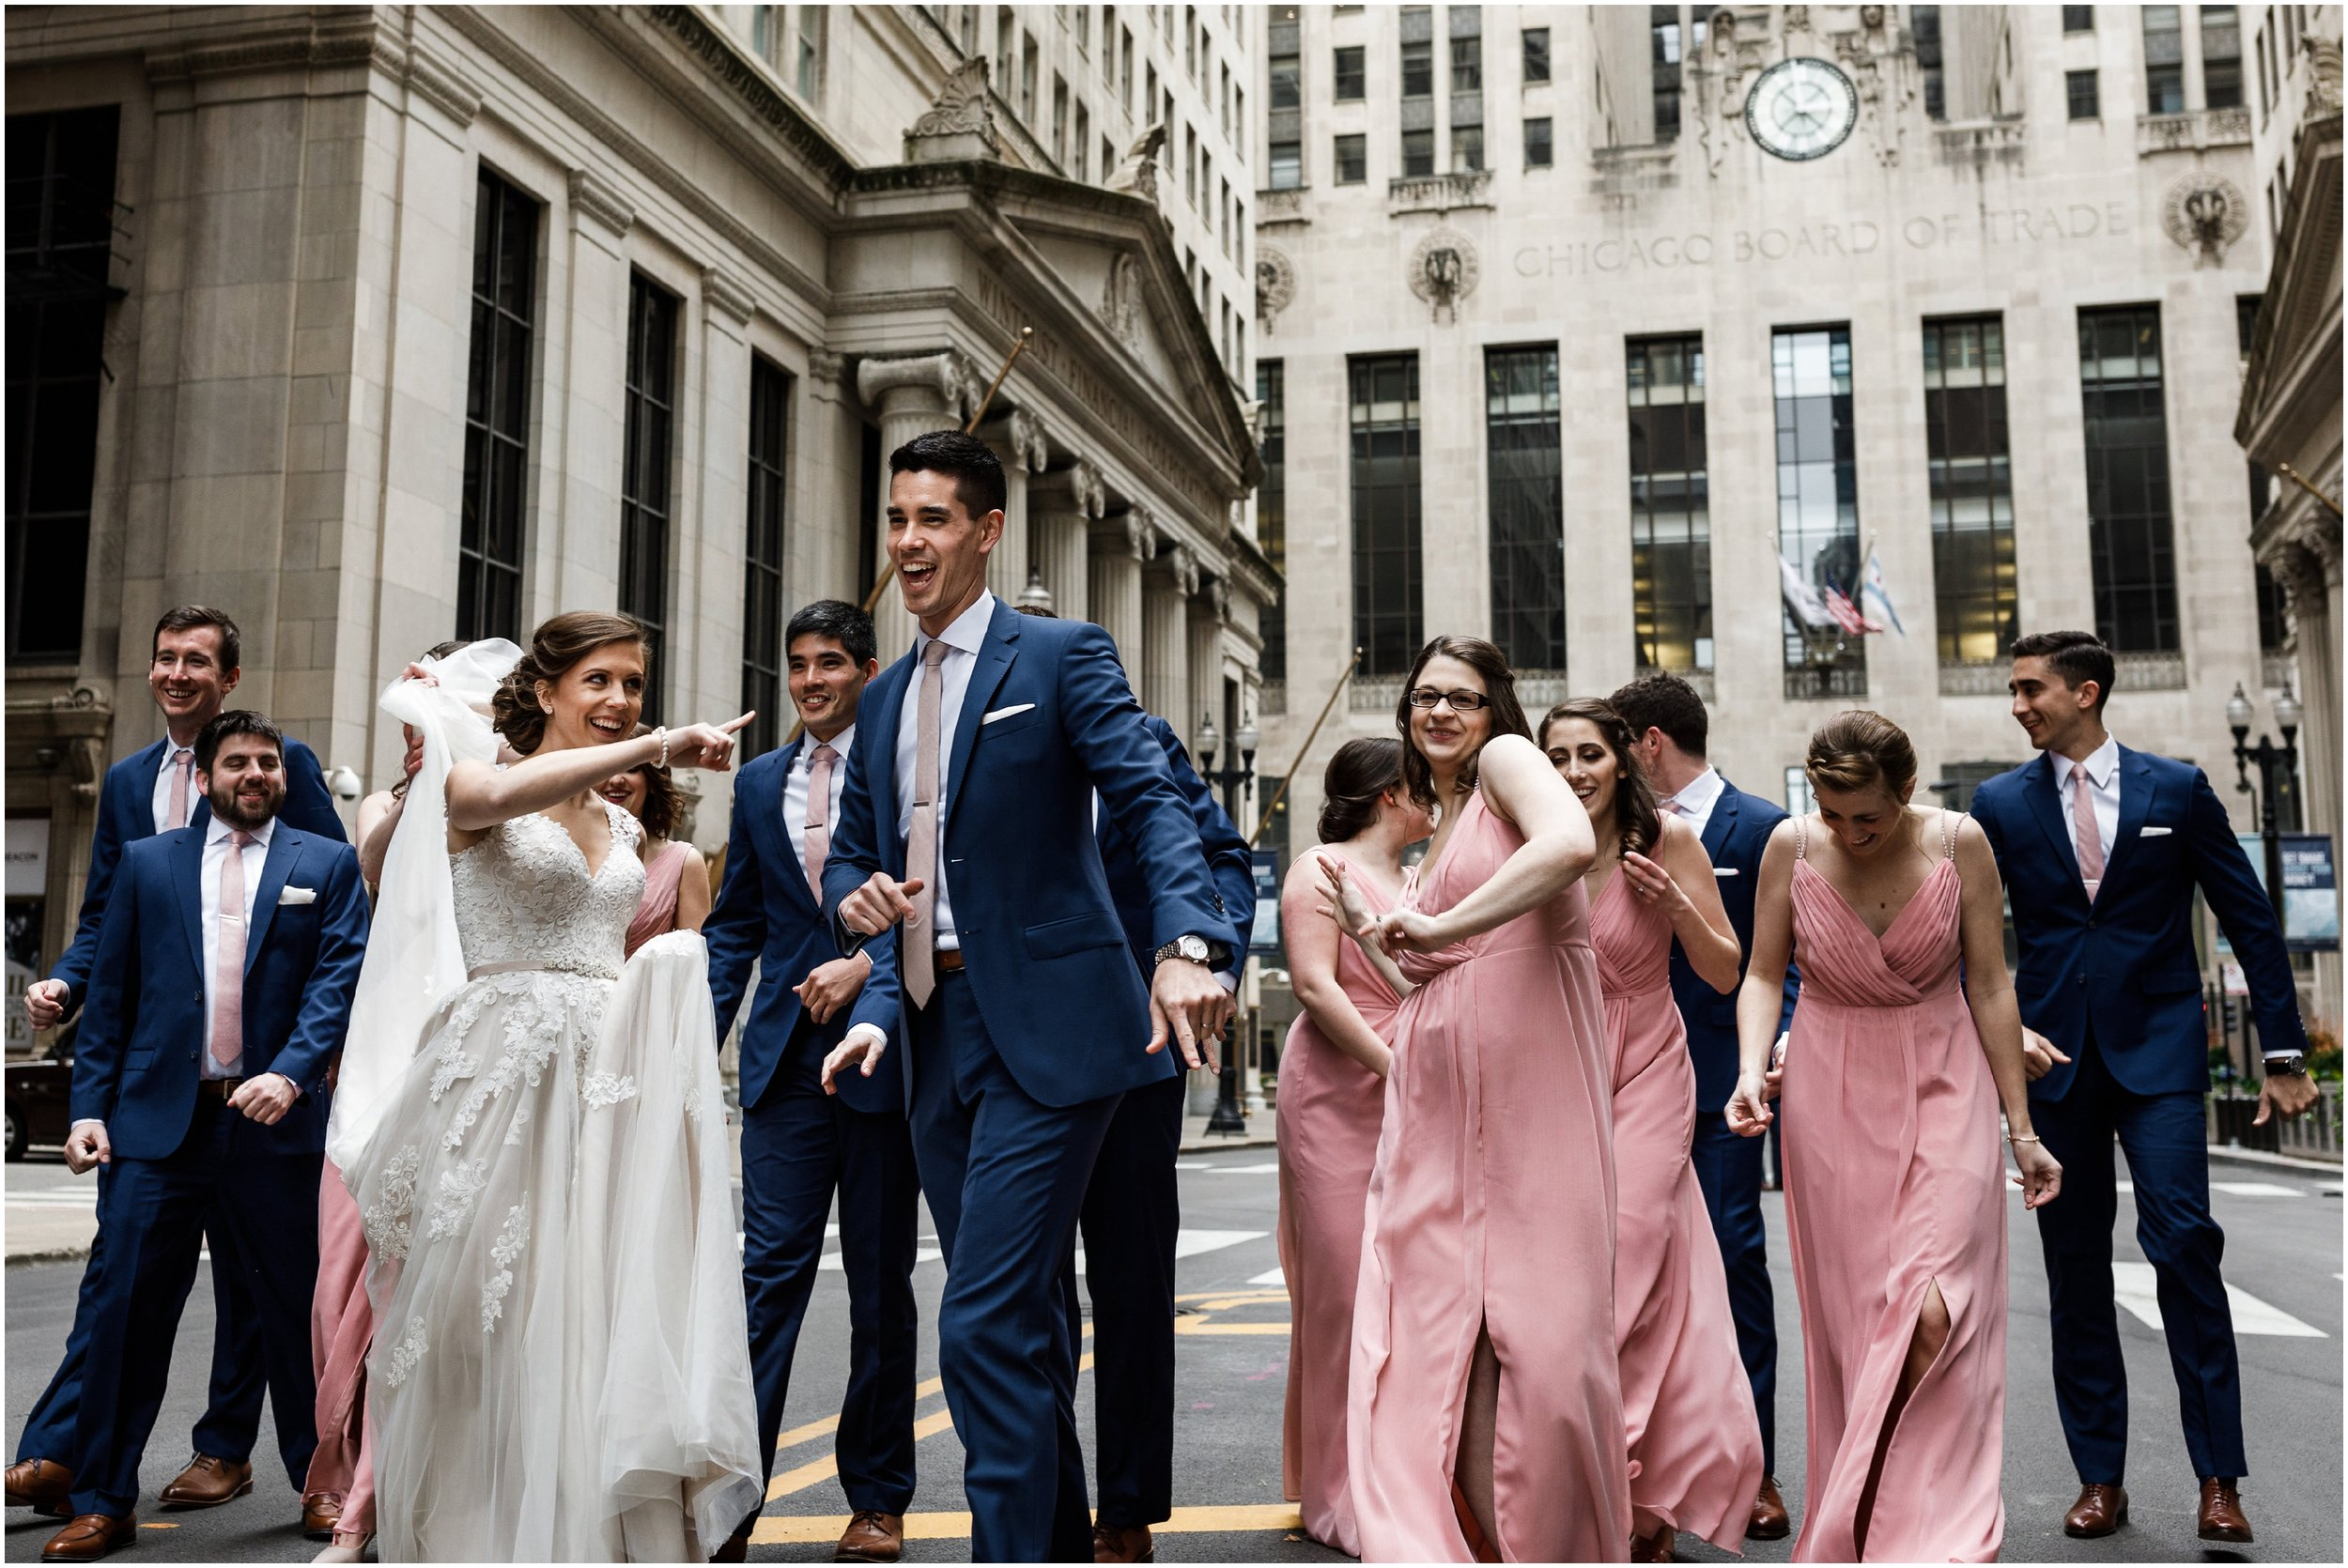 wedding party dancing in front of the Chicago Board of Trade